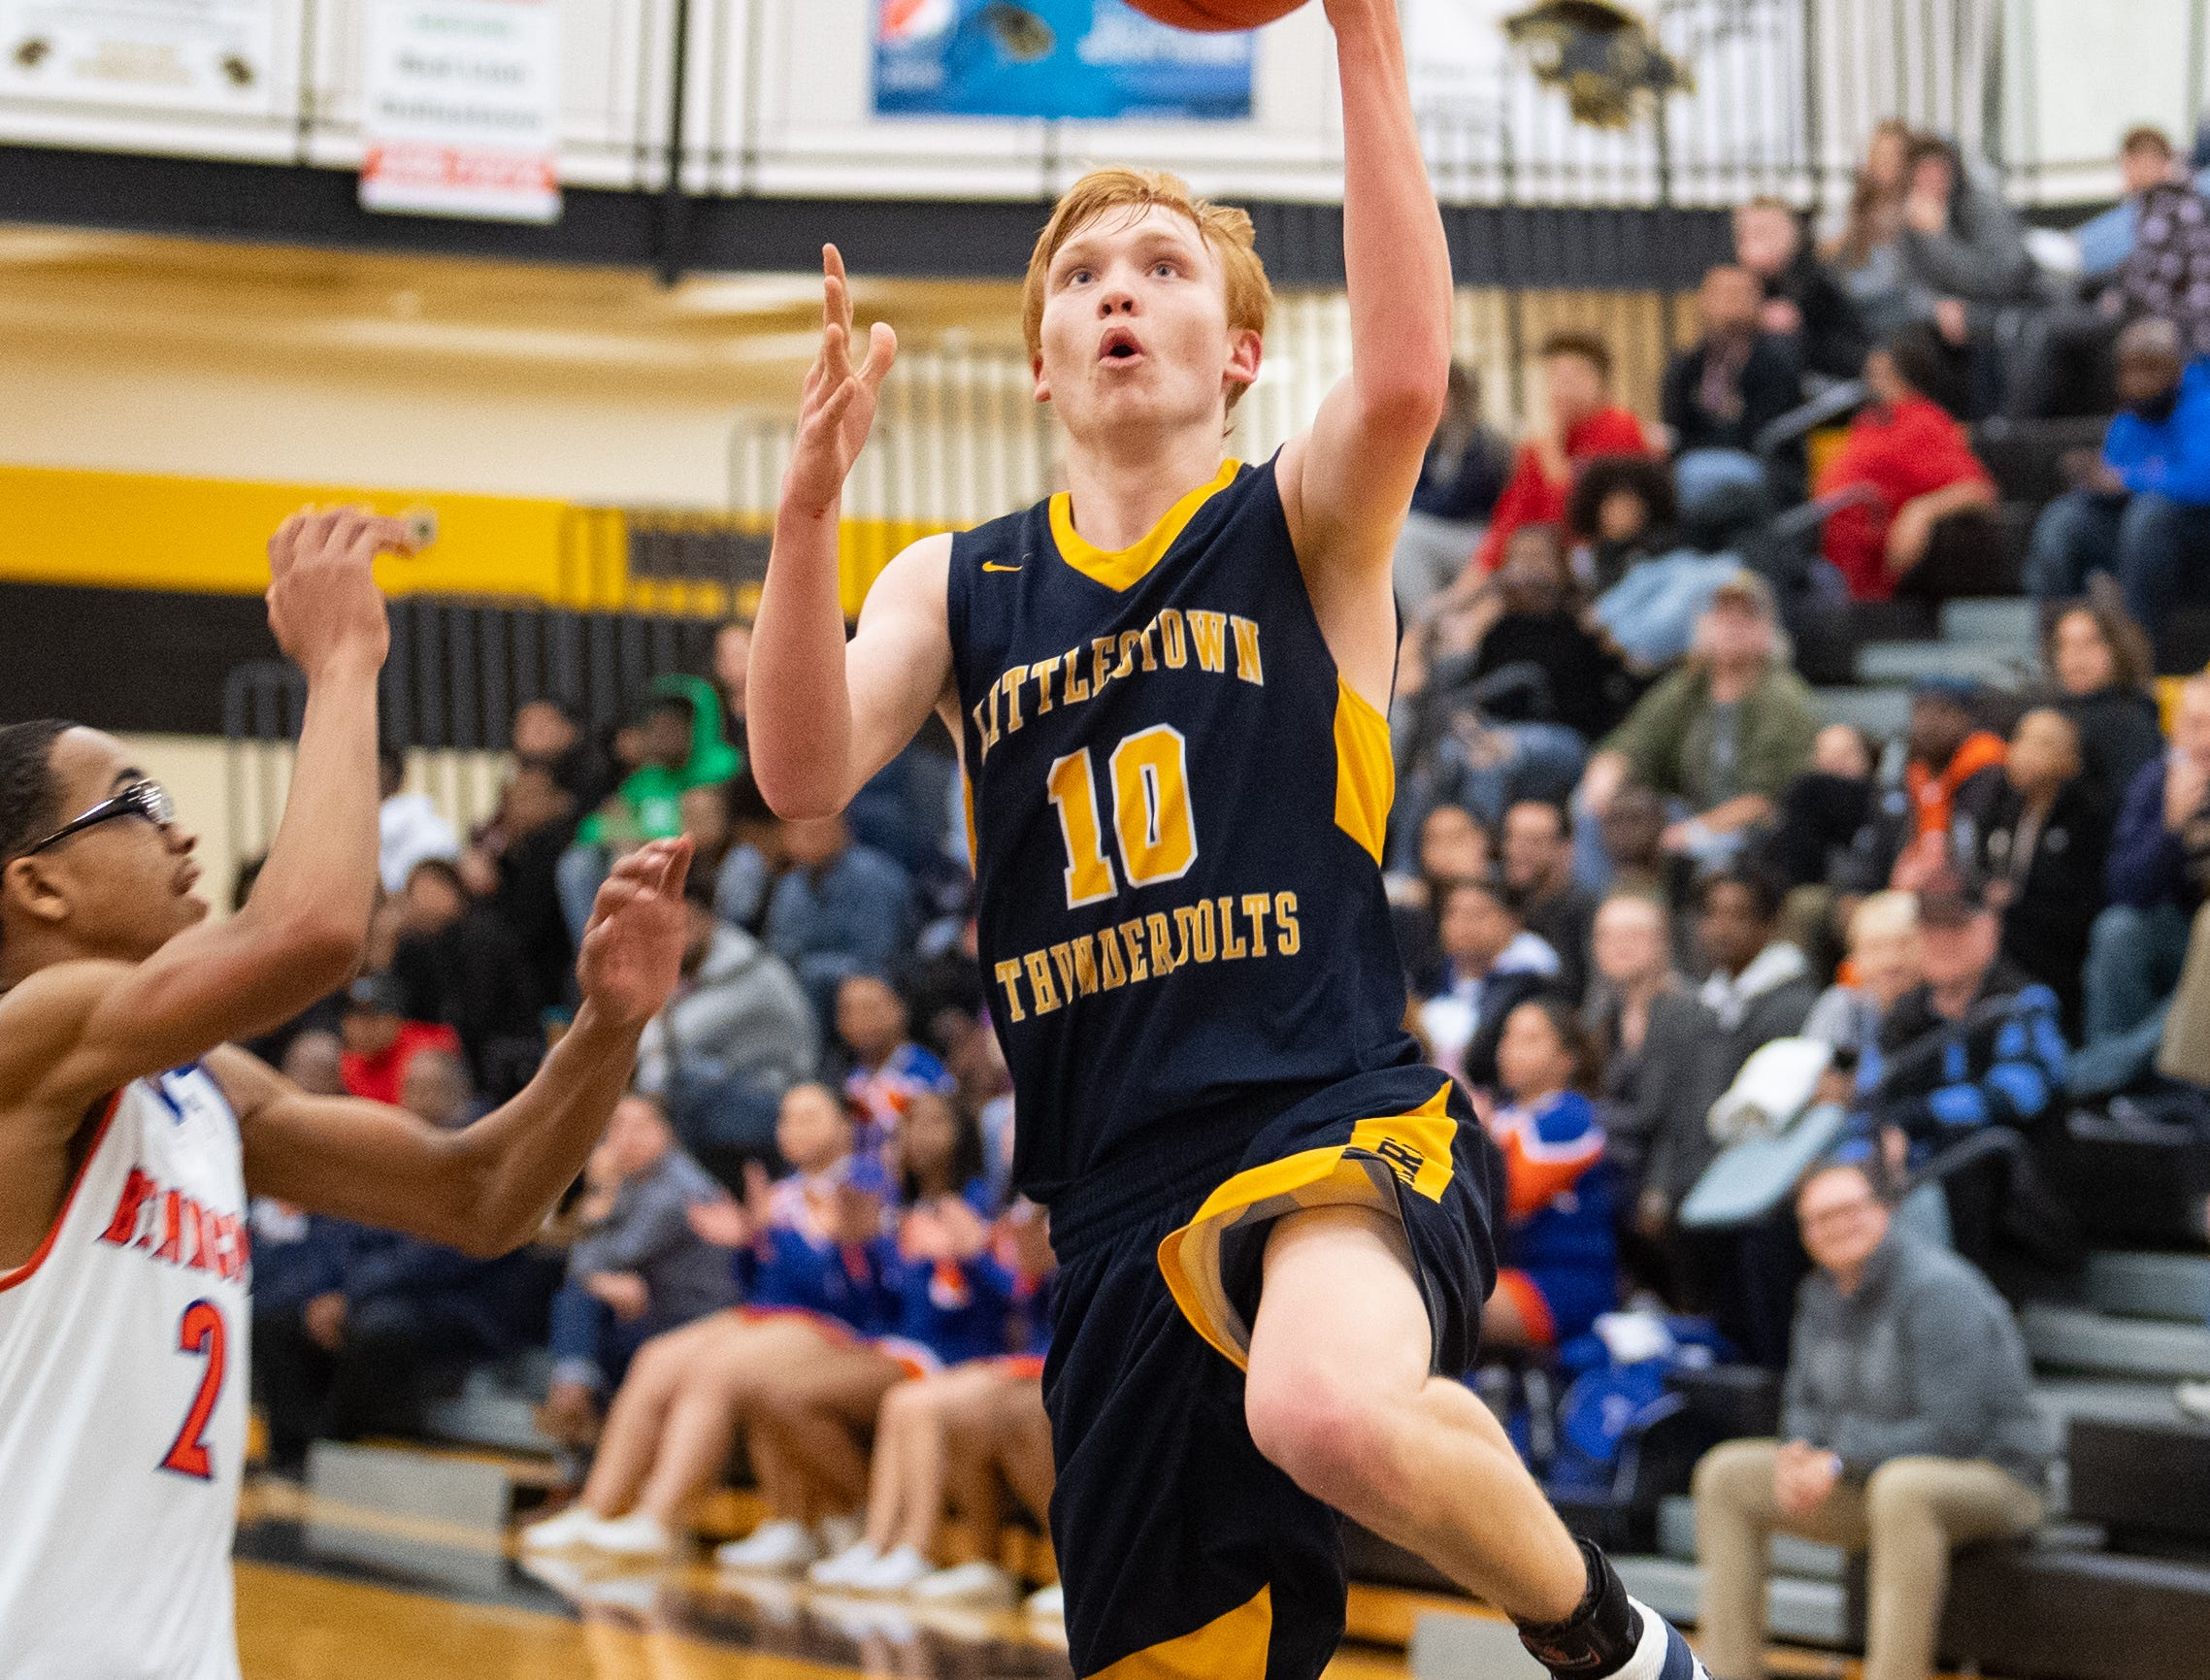 Littlestown's Dan Gazemen (10) finishes the fast break with a layup during the YAIAA boys' basketball semifinals between York High and Littlestown, Wednesday, February 13, 2019 at Red Lion Area High School. The Bearcats defeated the Thunderbolts 74 to 51.